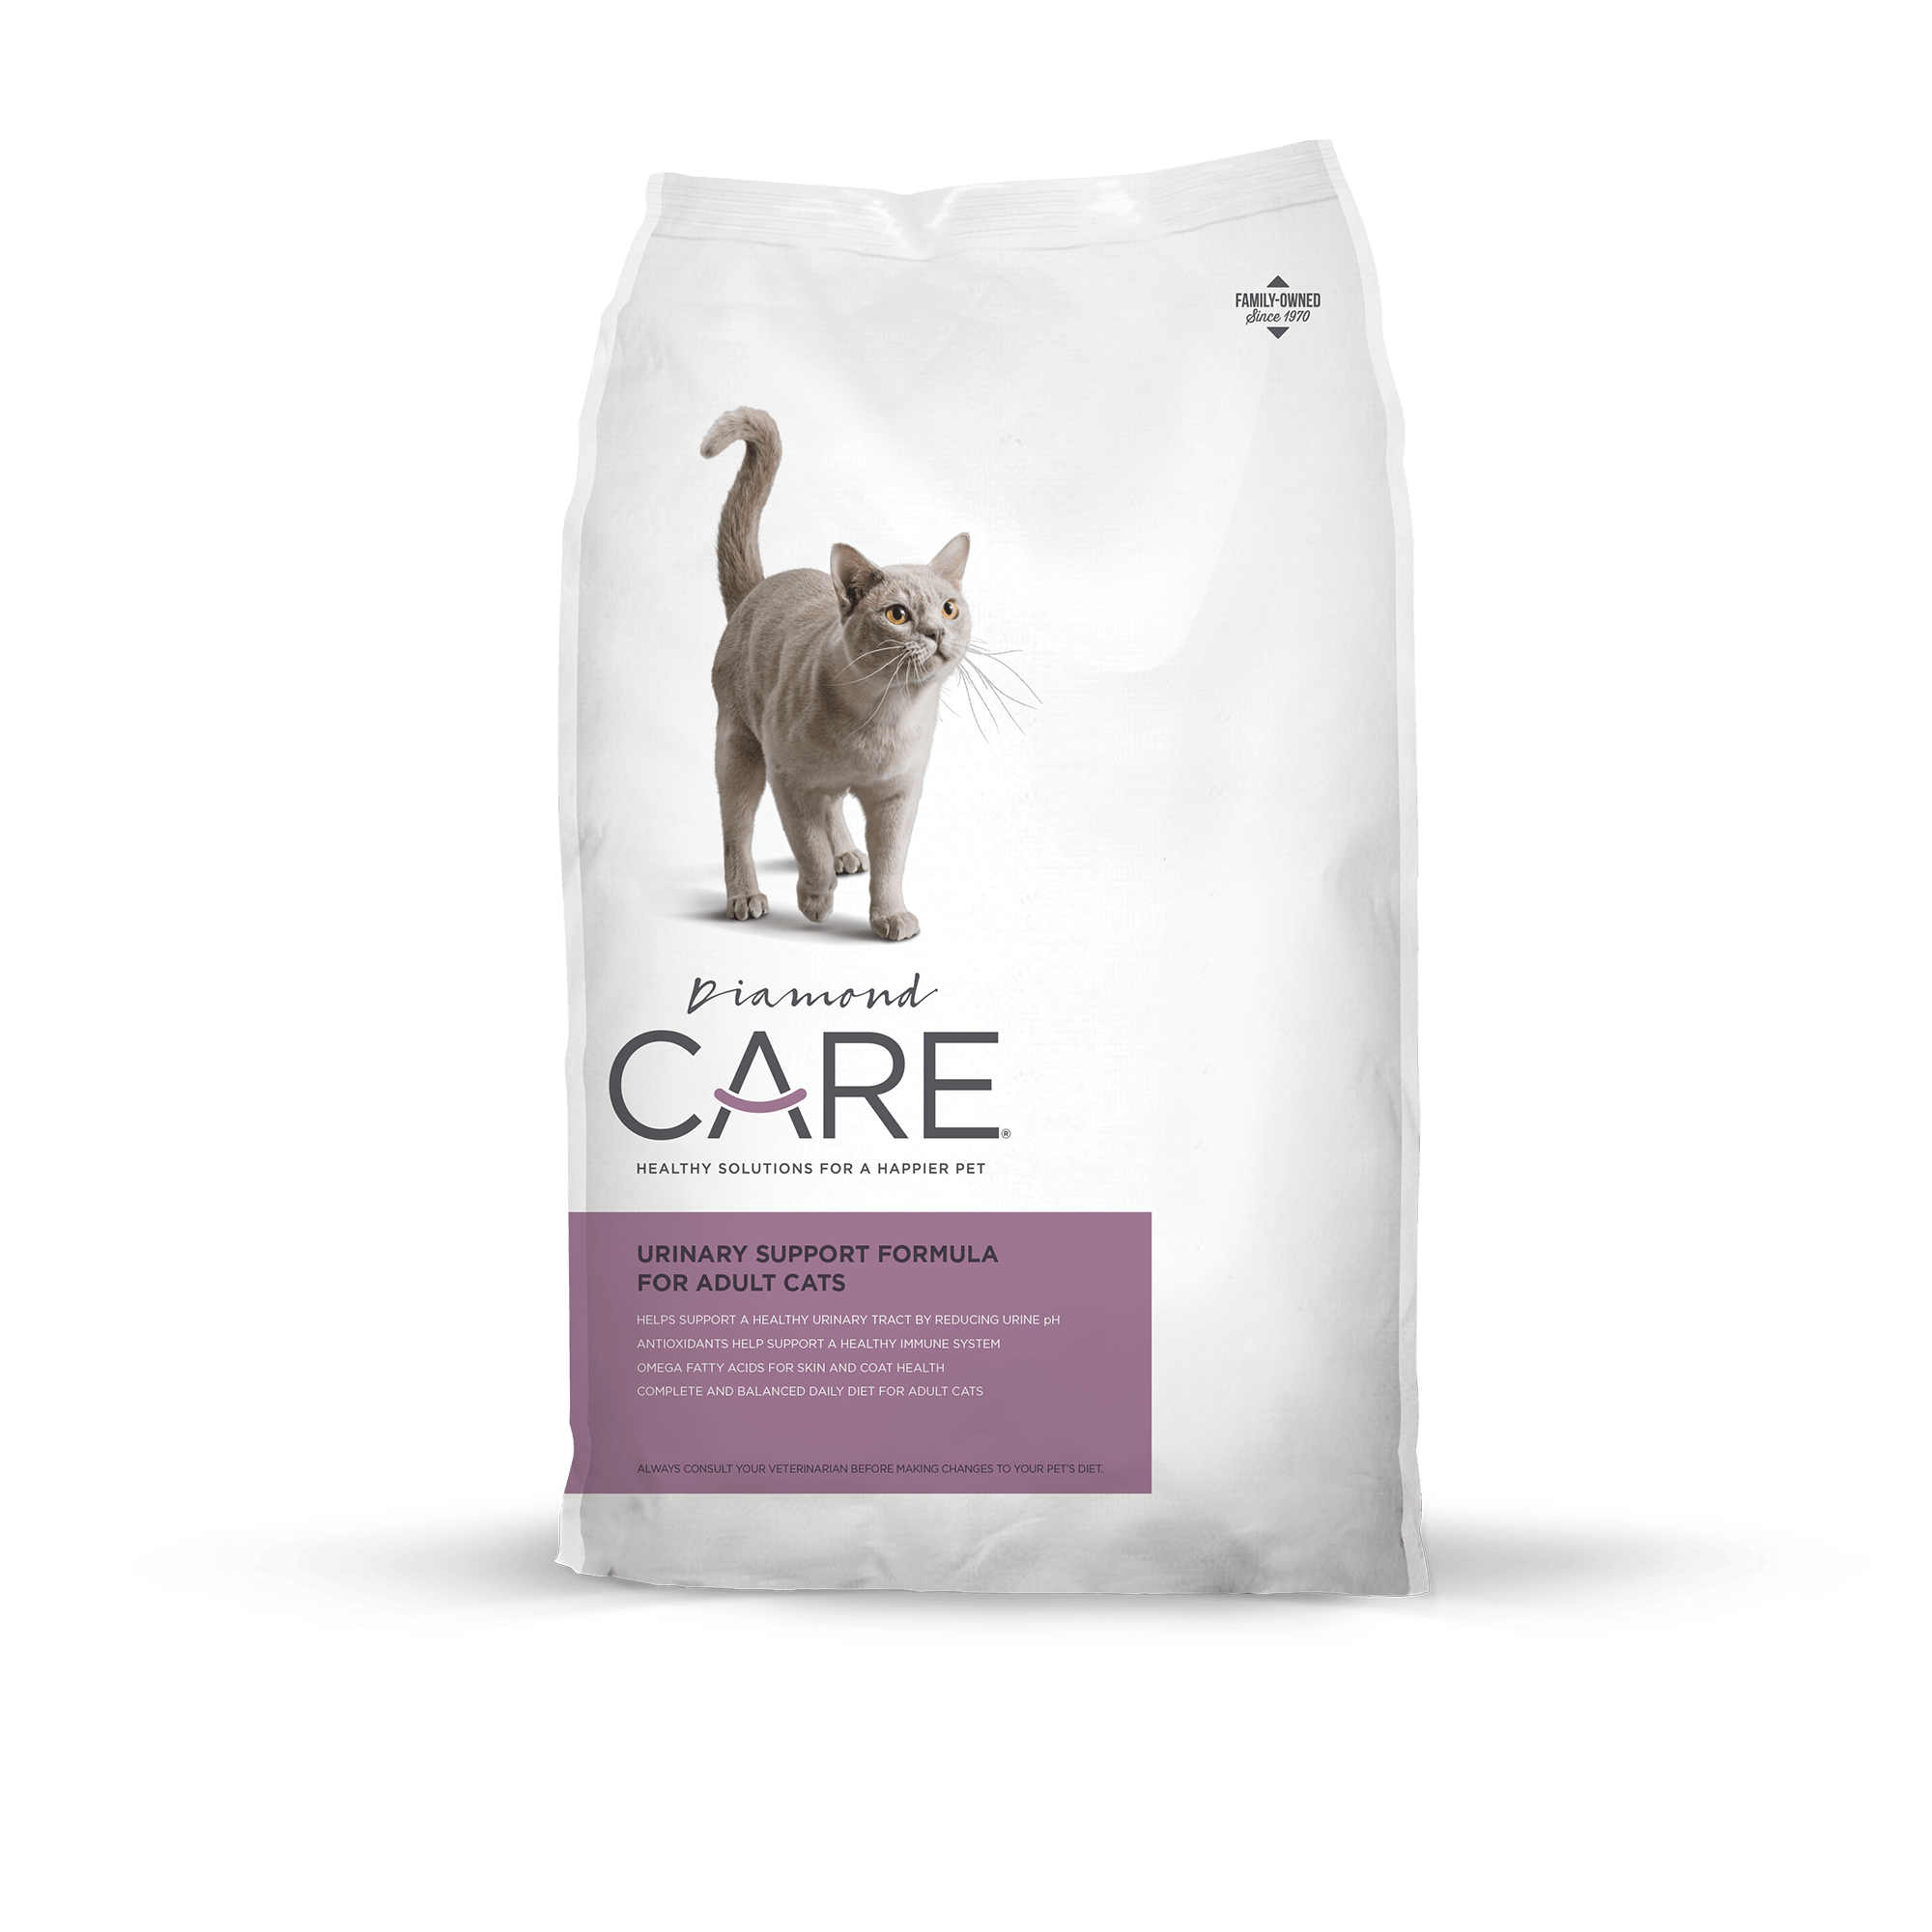 Diamond Care Urinary Support Formula Dry Cat Food Image